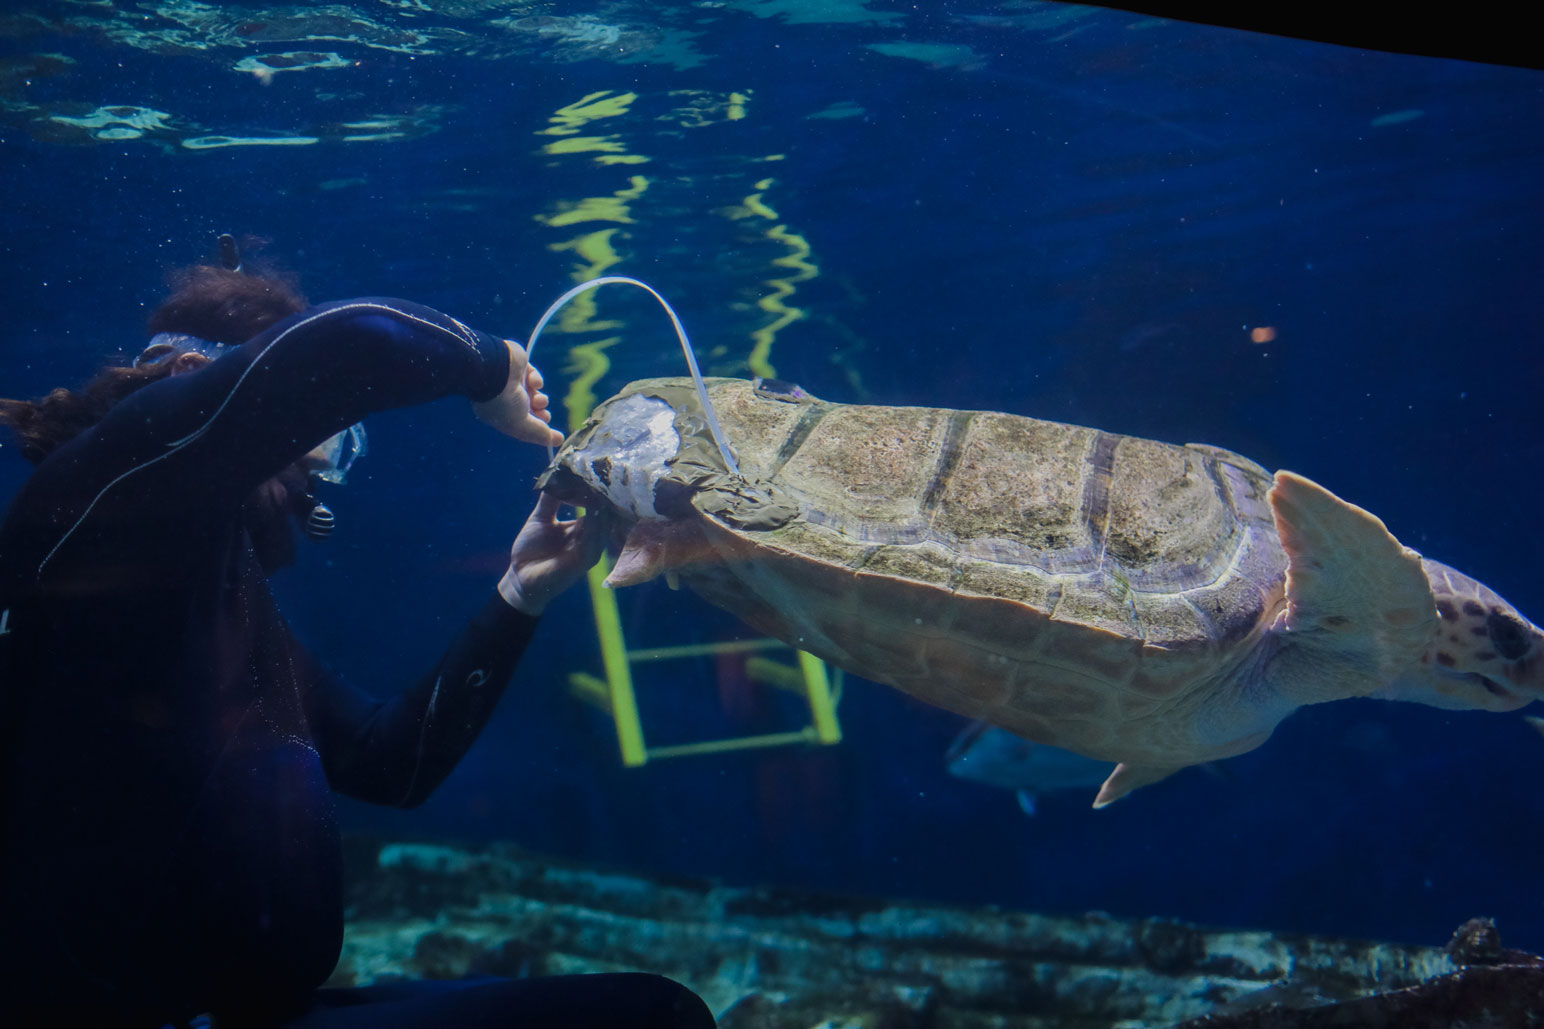 3-D Technology Helps Sea Turtle Thrive